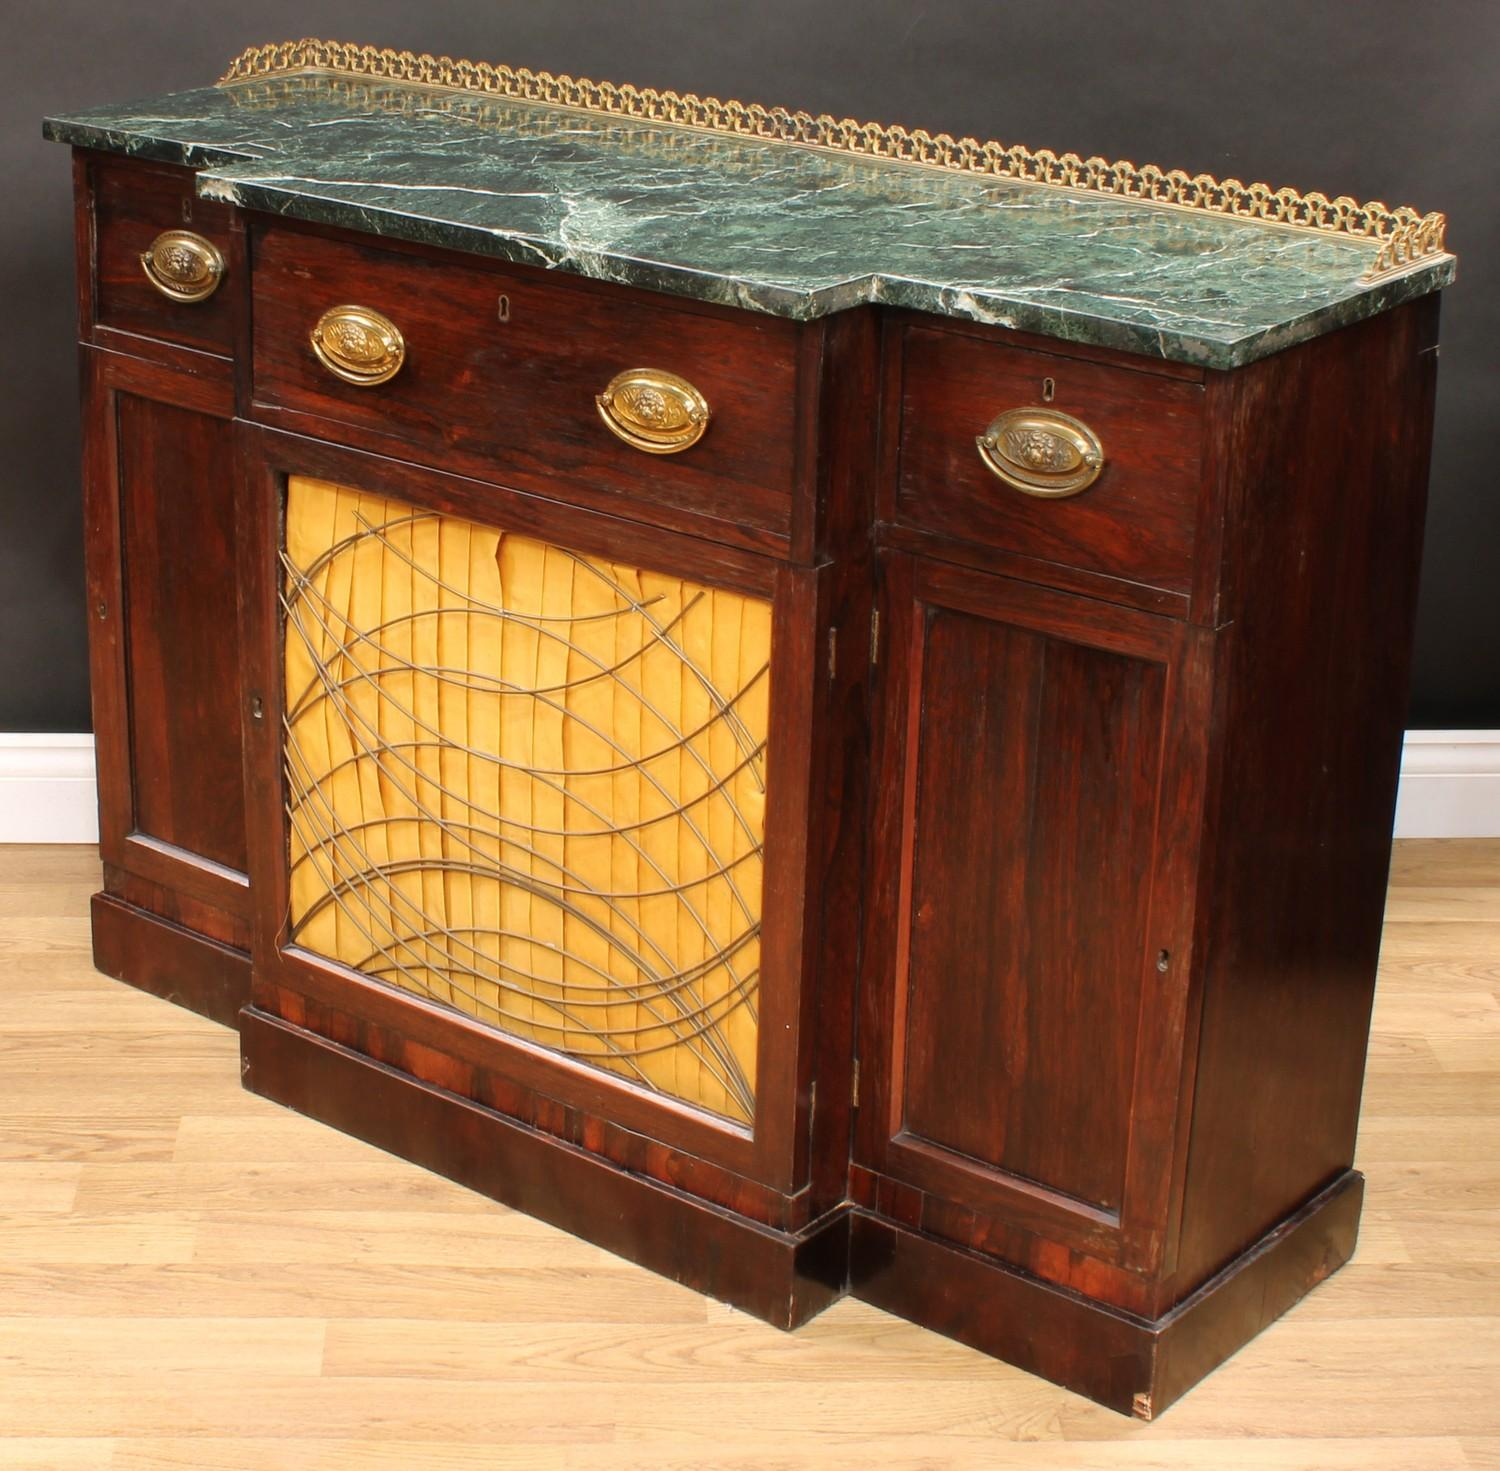 A 'Regency' rosewood break-centre secretaire side cabinet, verde antico marble top with three- - Image 6 of 7